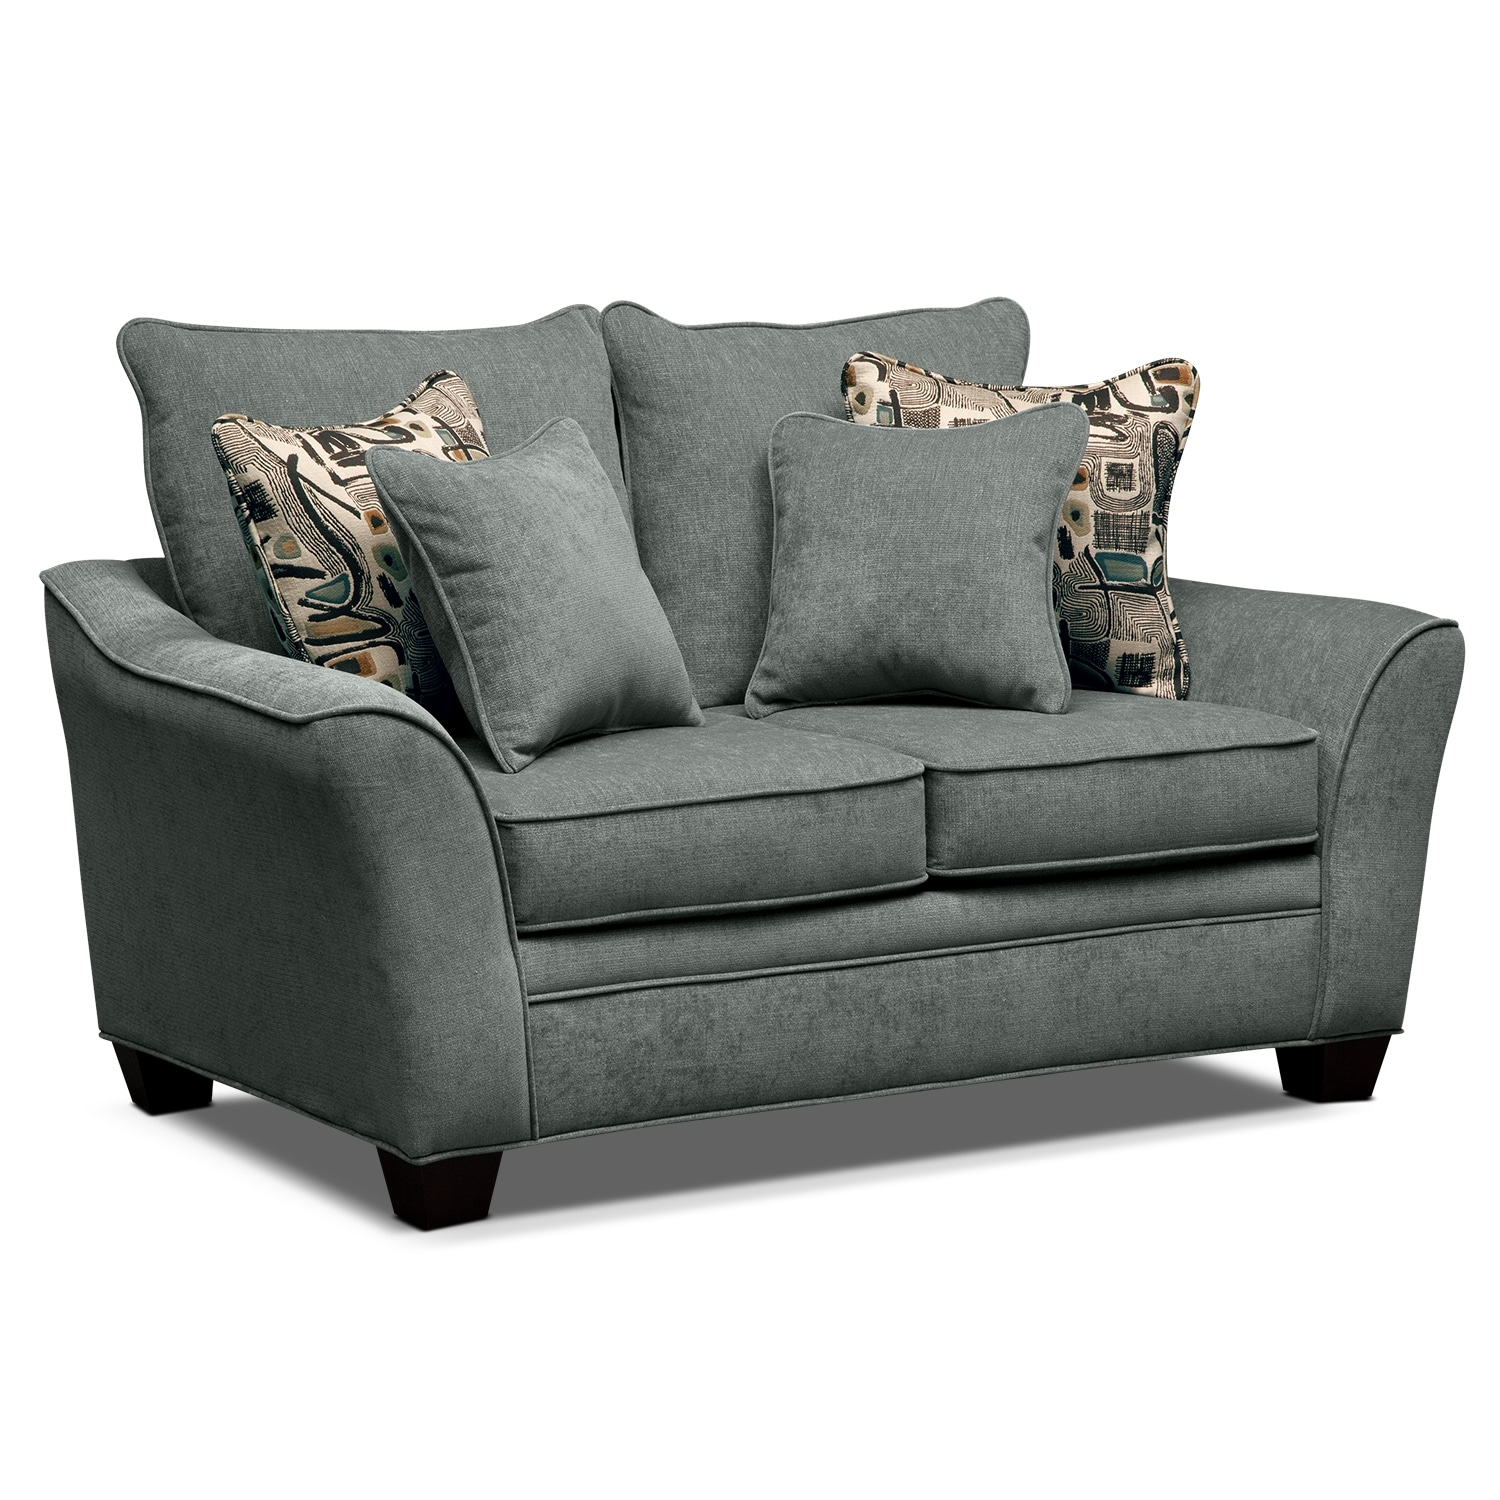 Living Room Furniture - Albion Blue Loveseat